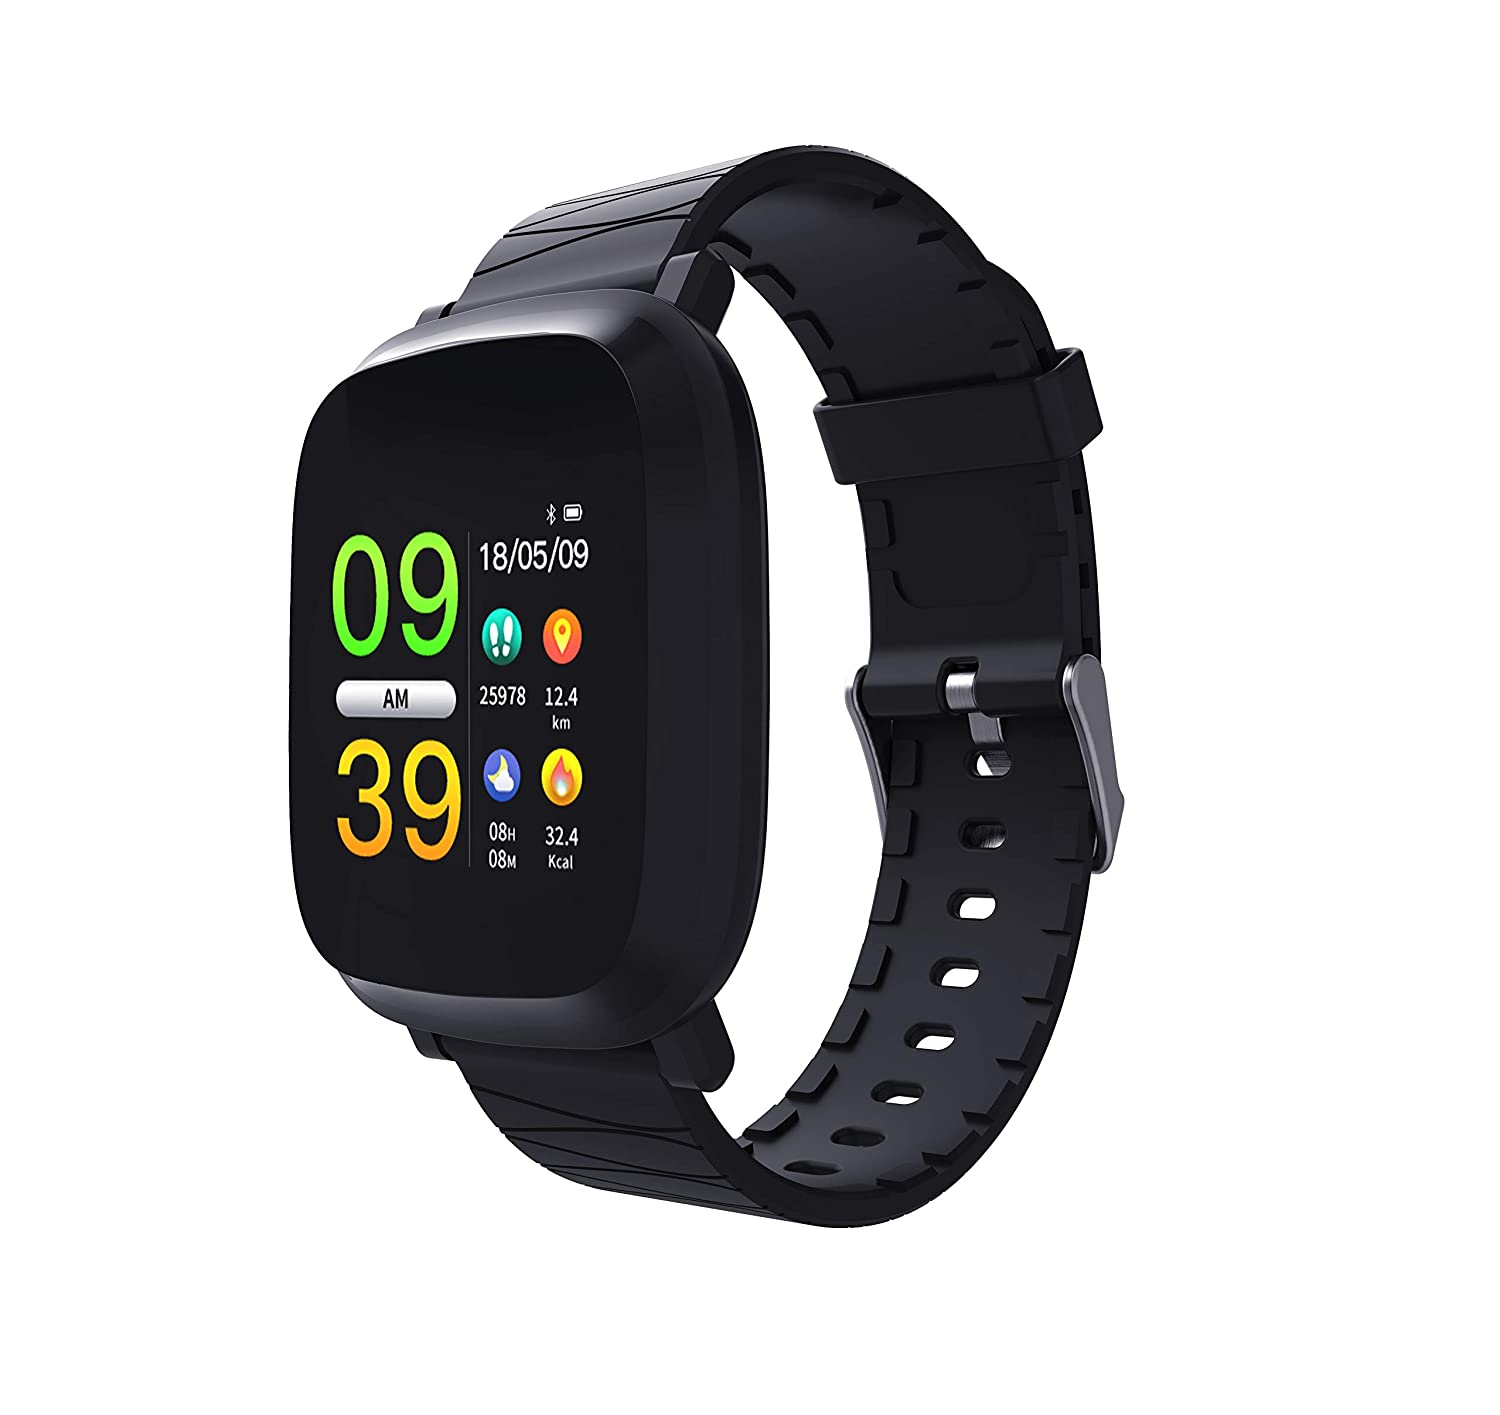 Amazon.com: elegantstunning Smart Watch Blood Pressure Color ...